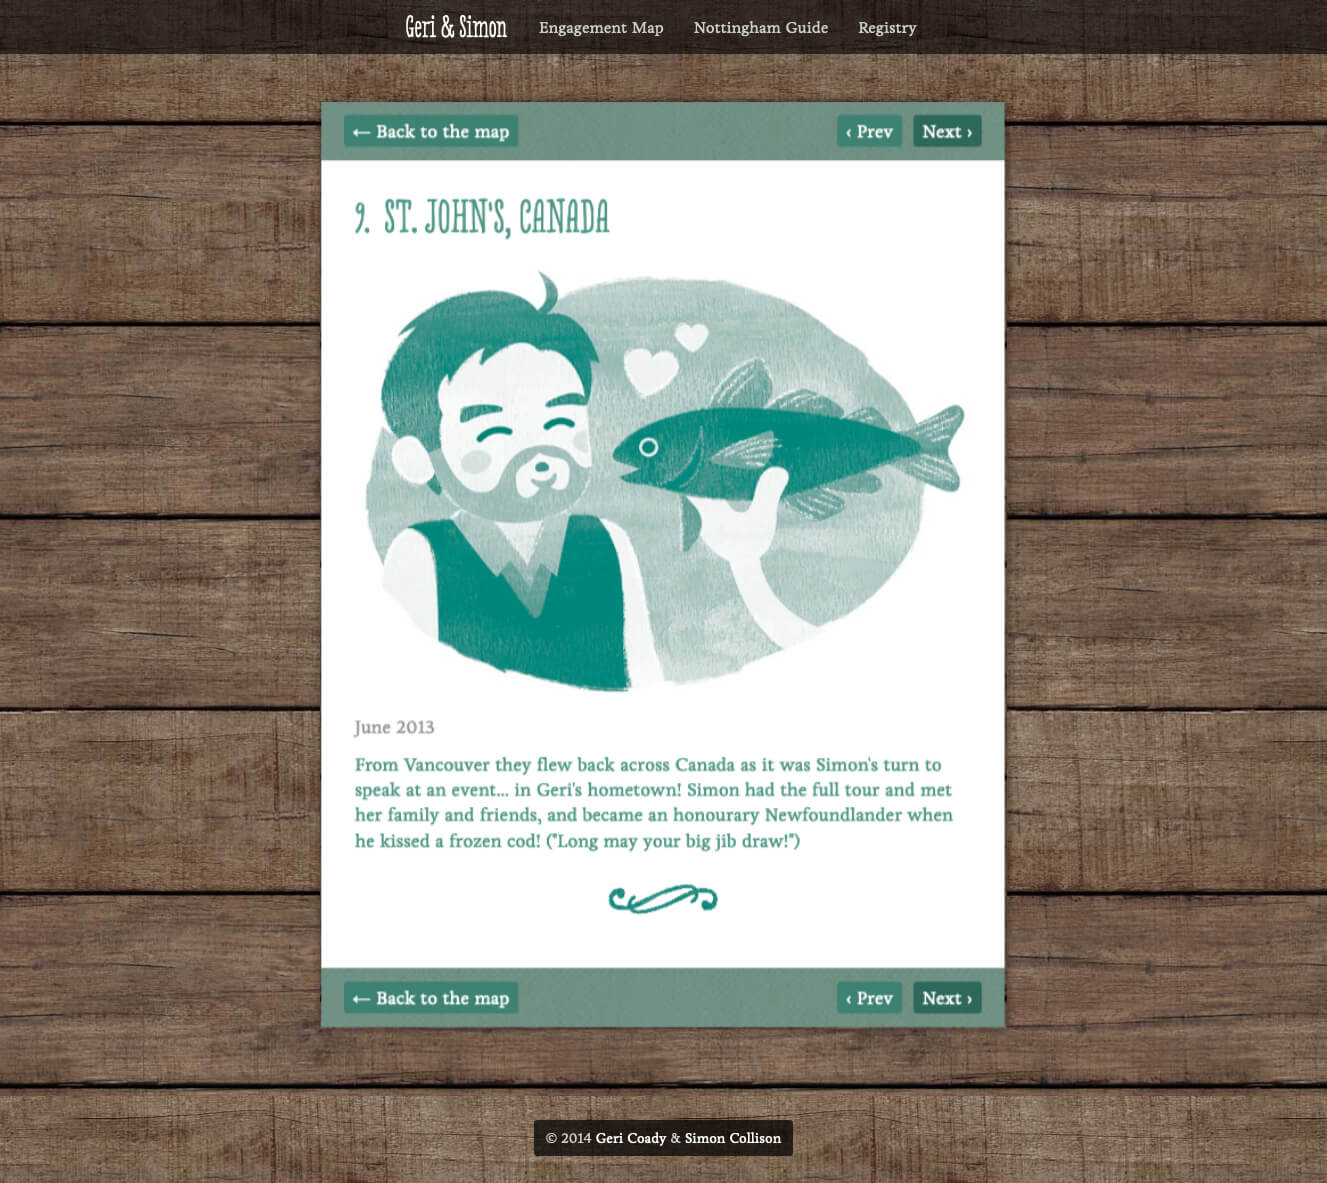 Web detail of Newfoundland tradition with Simon kissing a frozen cod